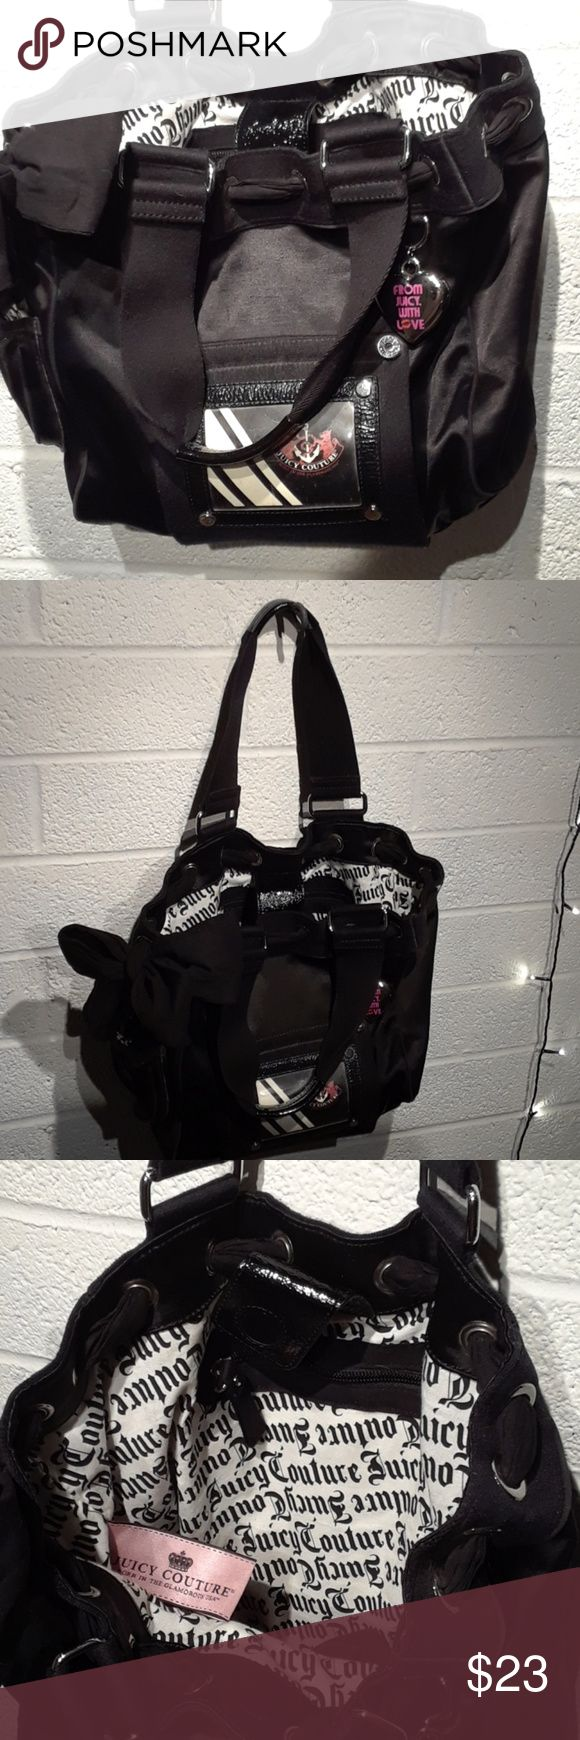 Women's Juicy Couture Bag. Combination leather cotton collage.  In very good clean condition. Juicy Couture Bags Totes